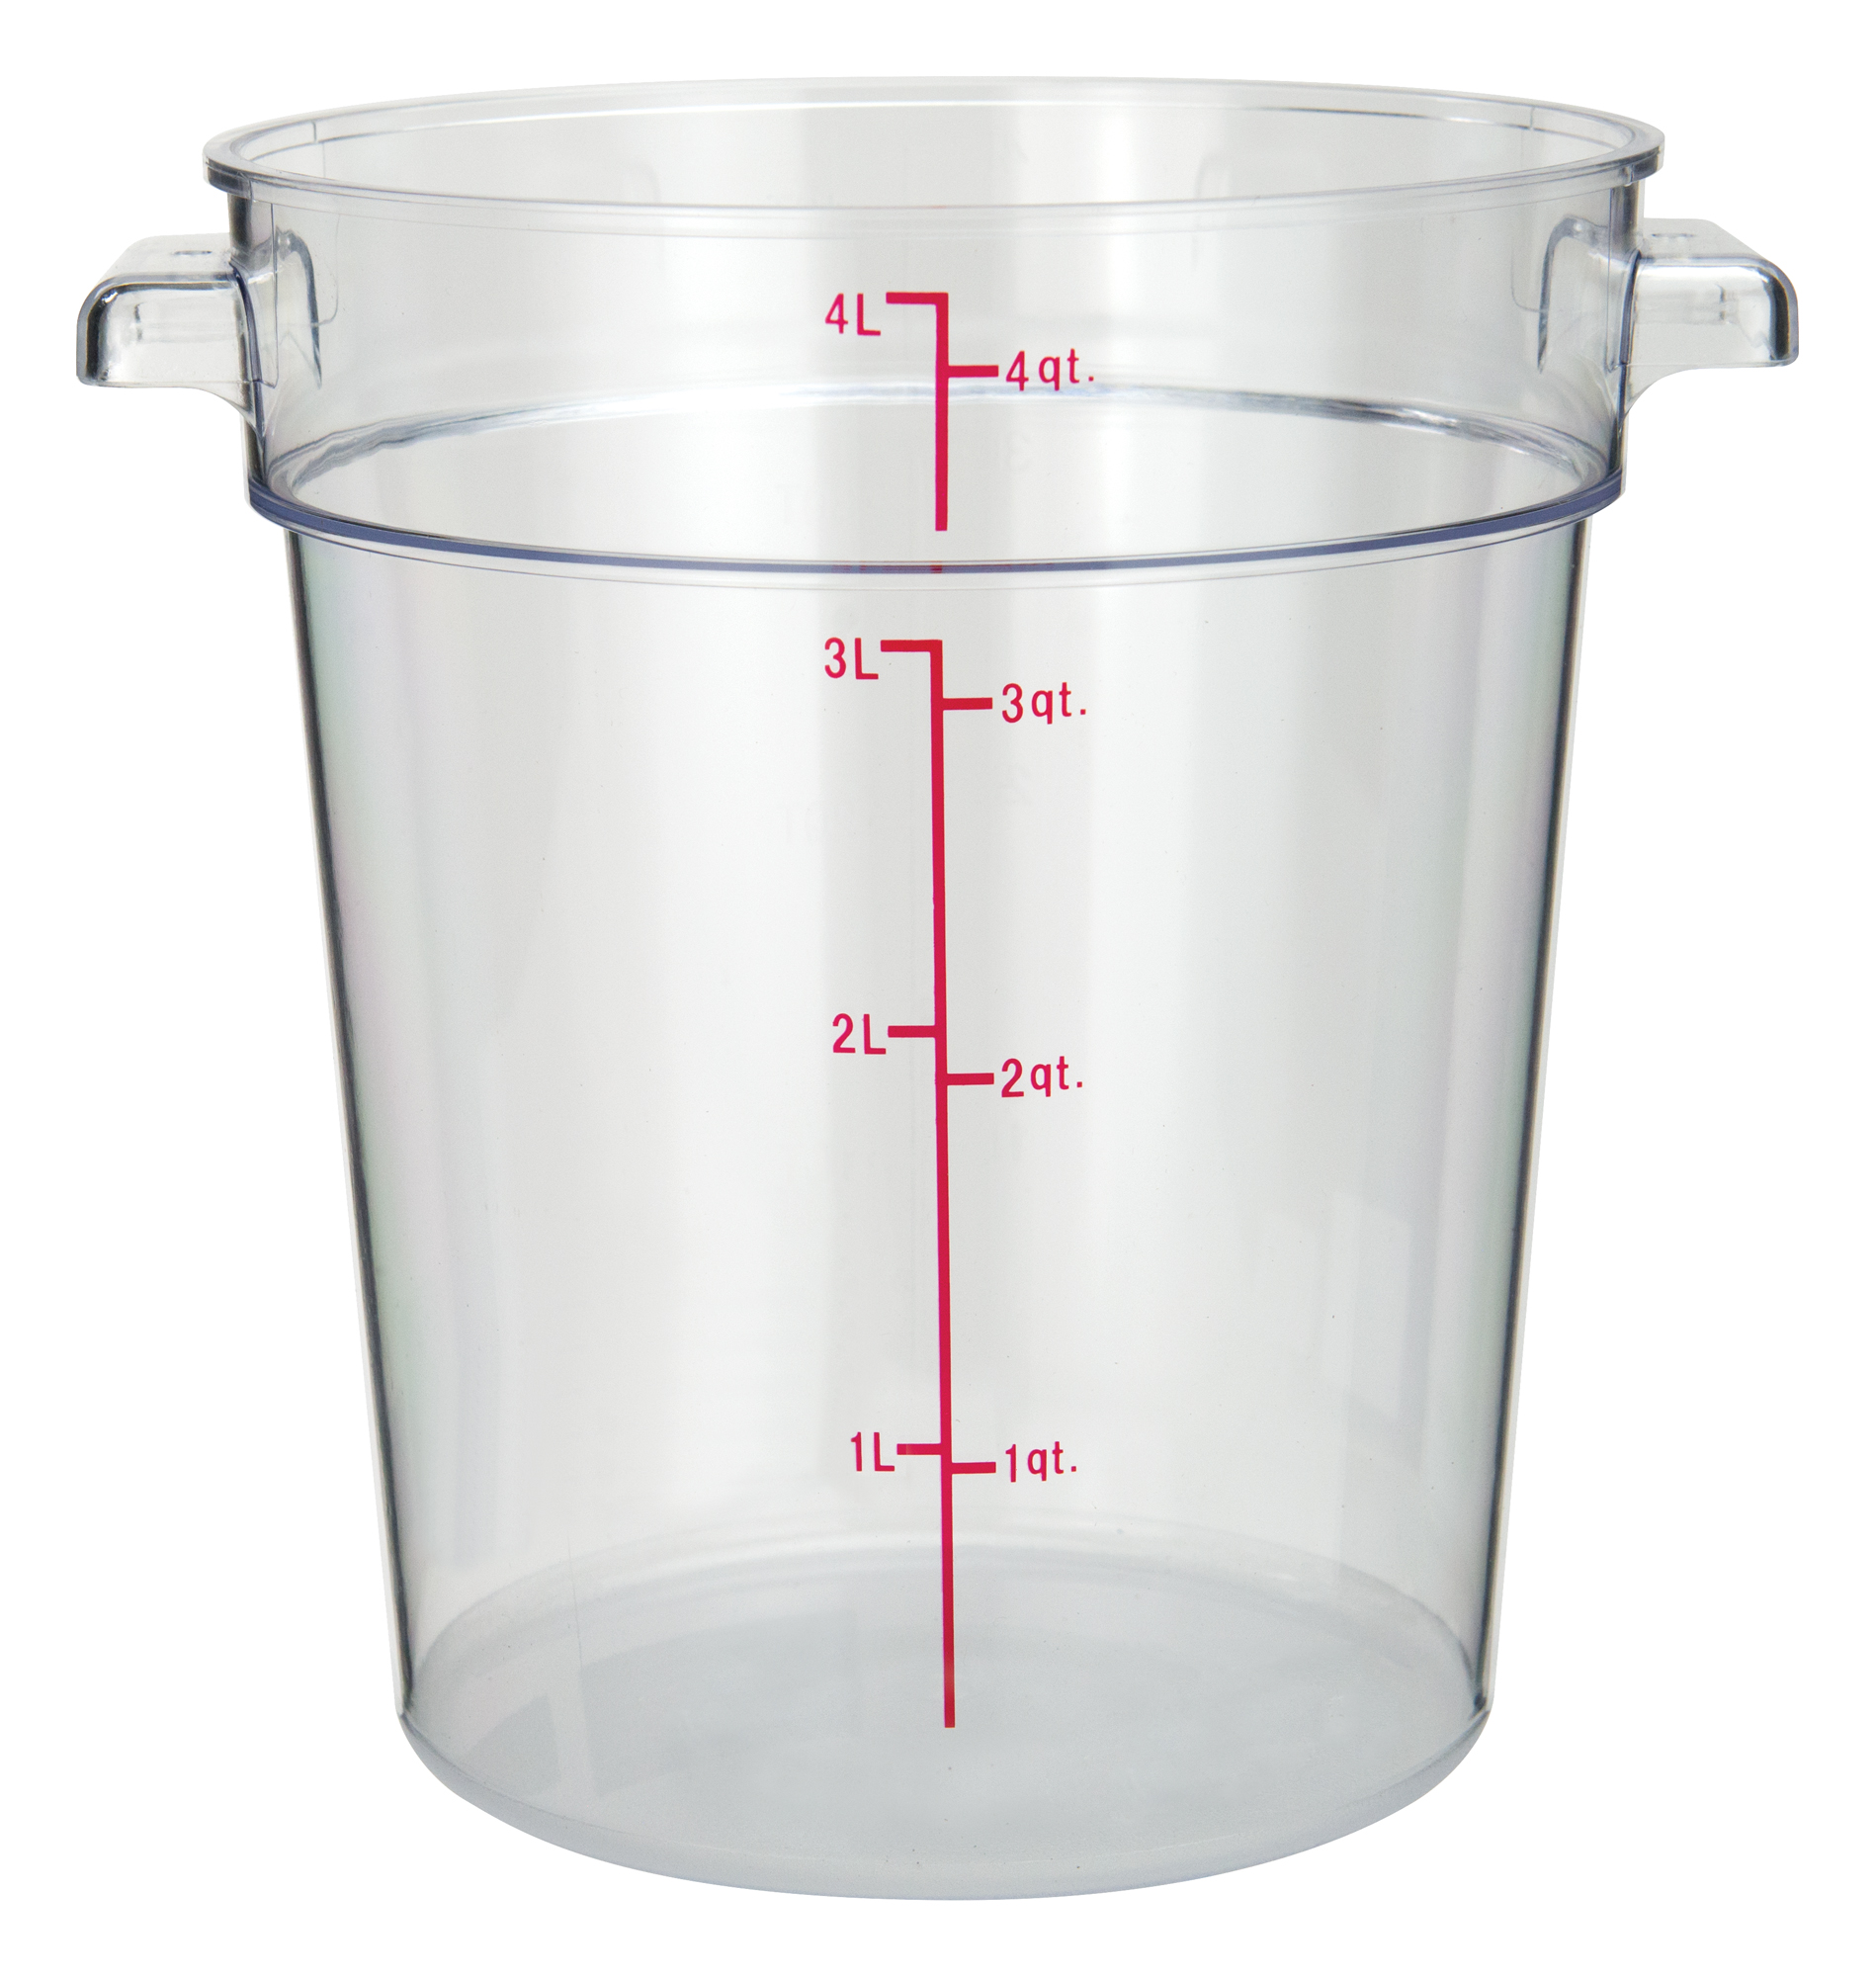 Winco PCRC-4 round food storage containers